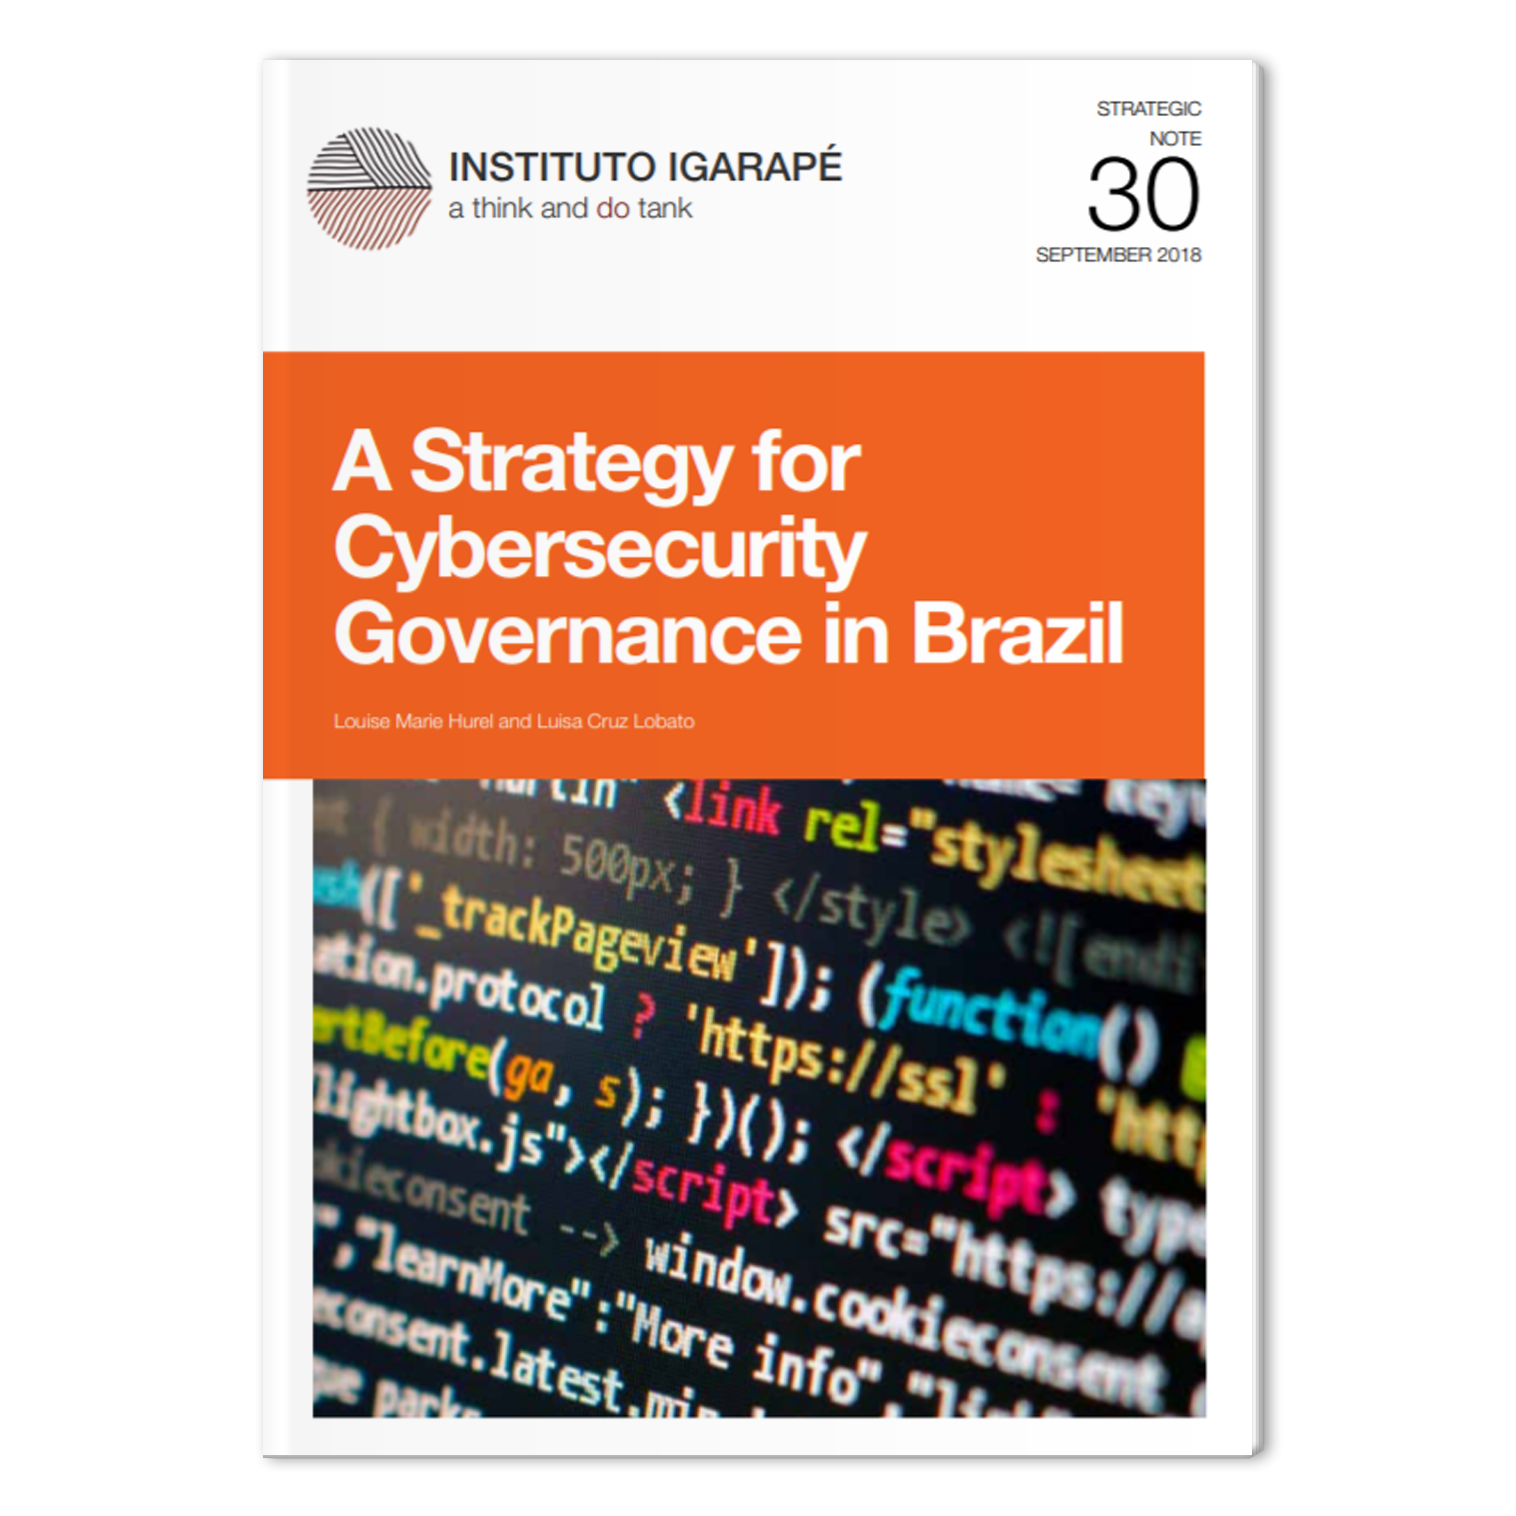 SN 30 A Strategy for Cybersecurity Governance in Brazil